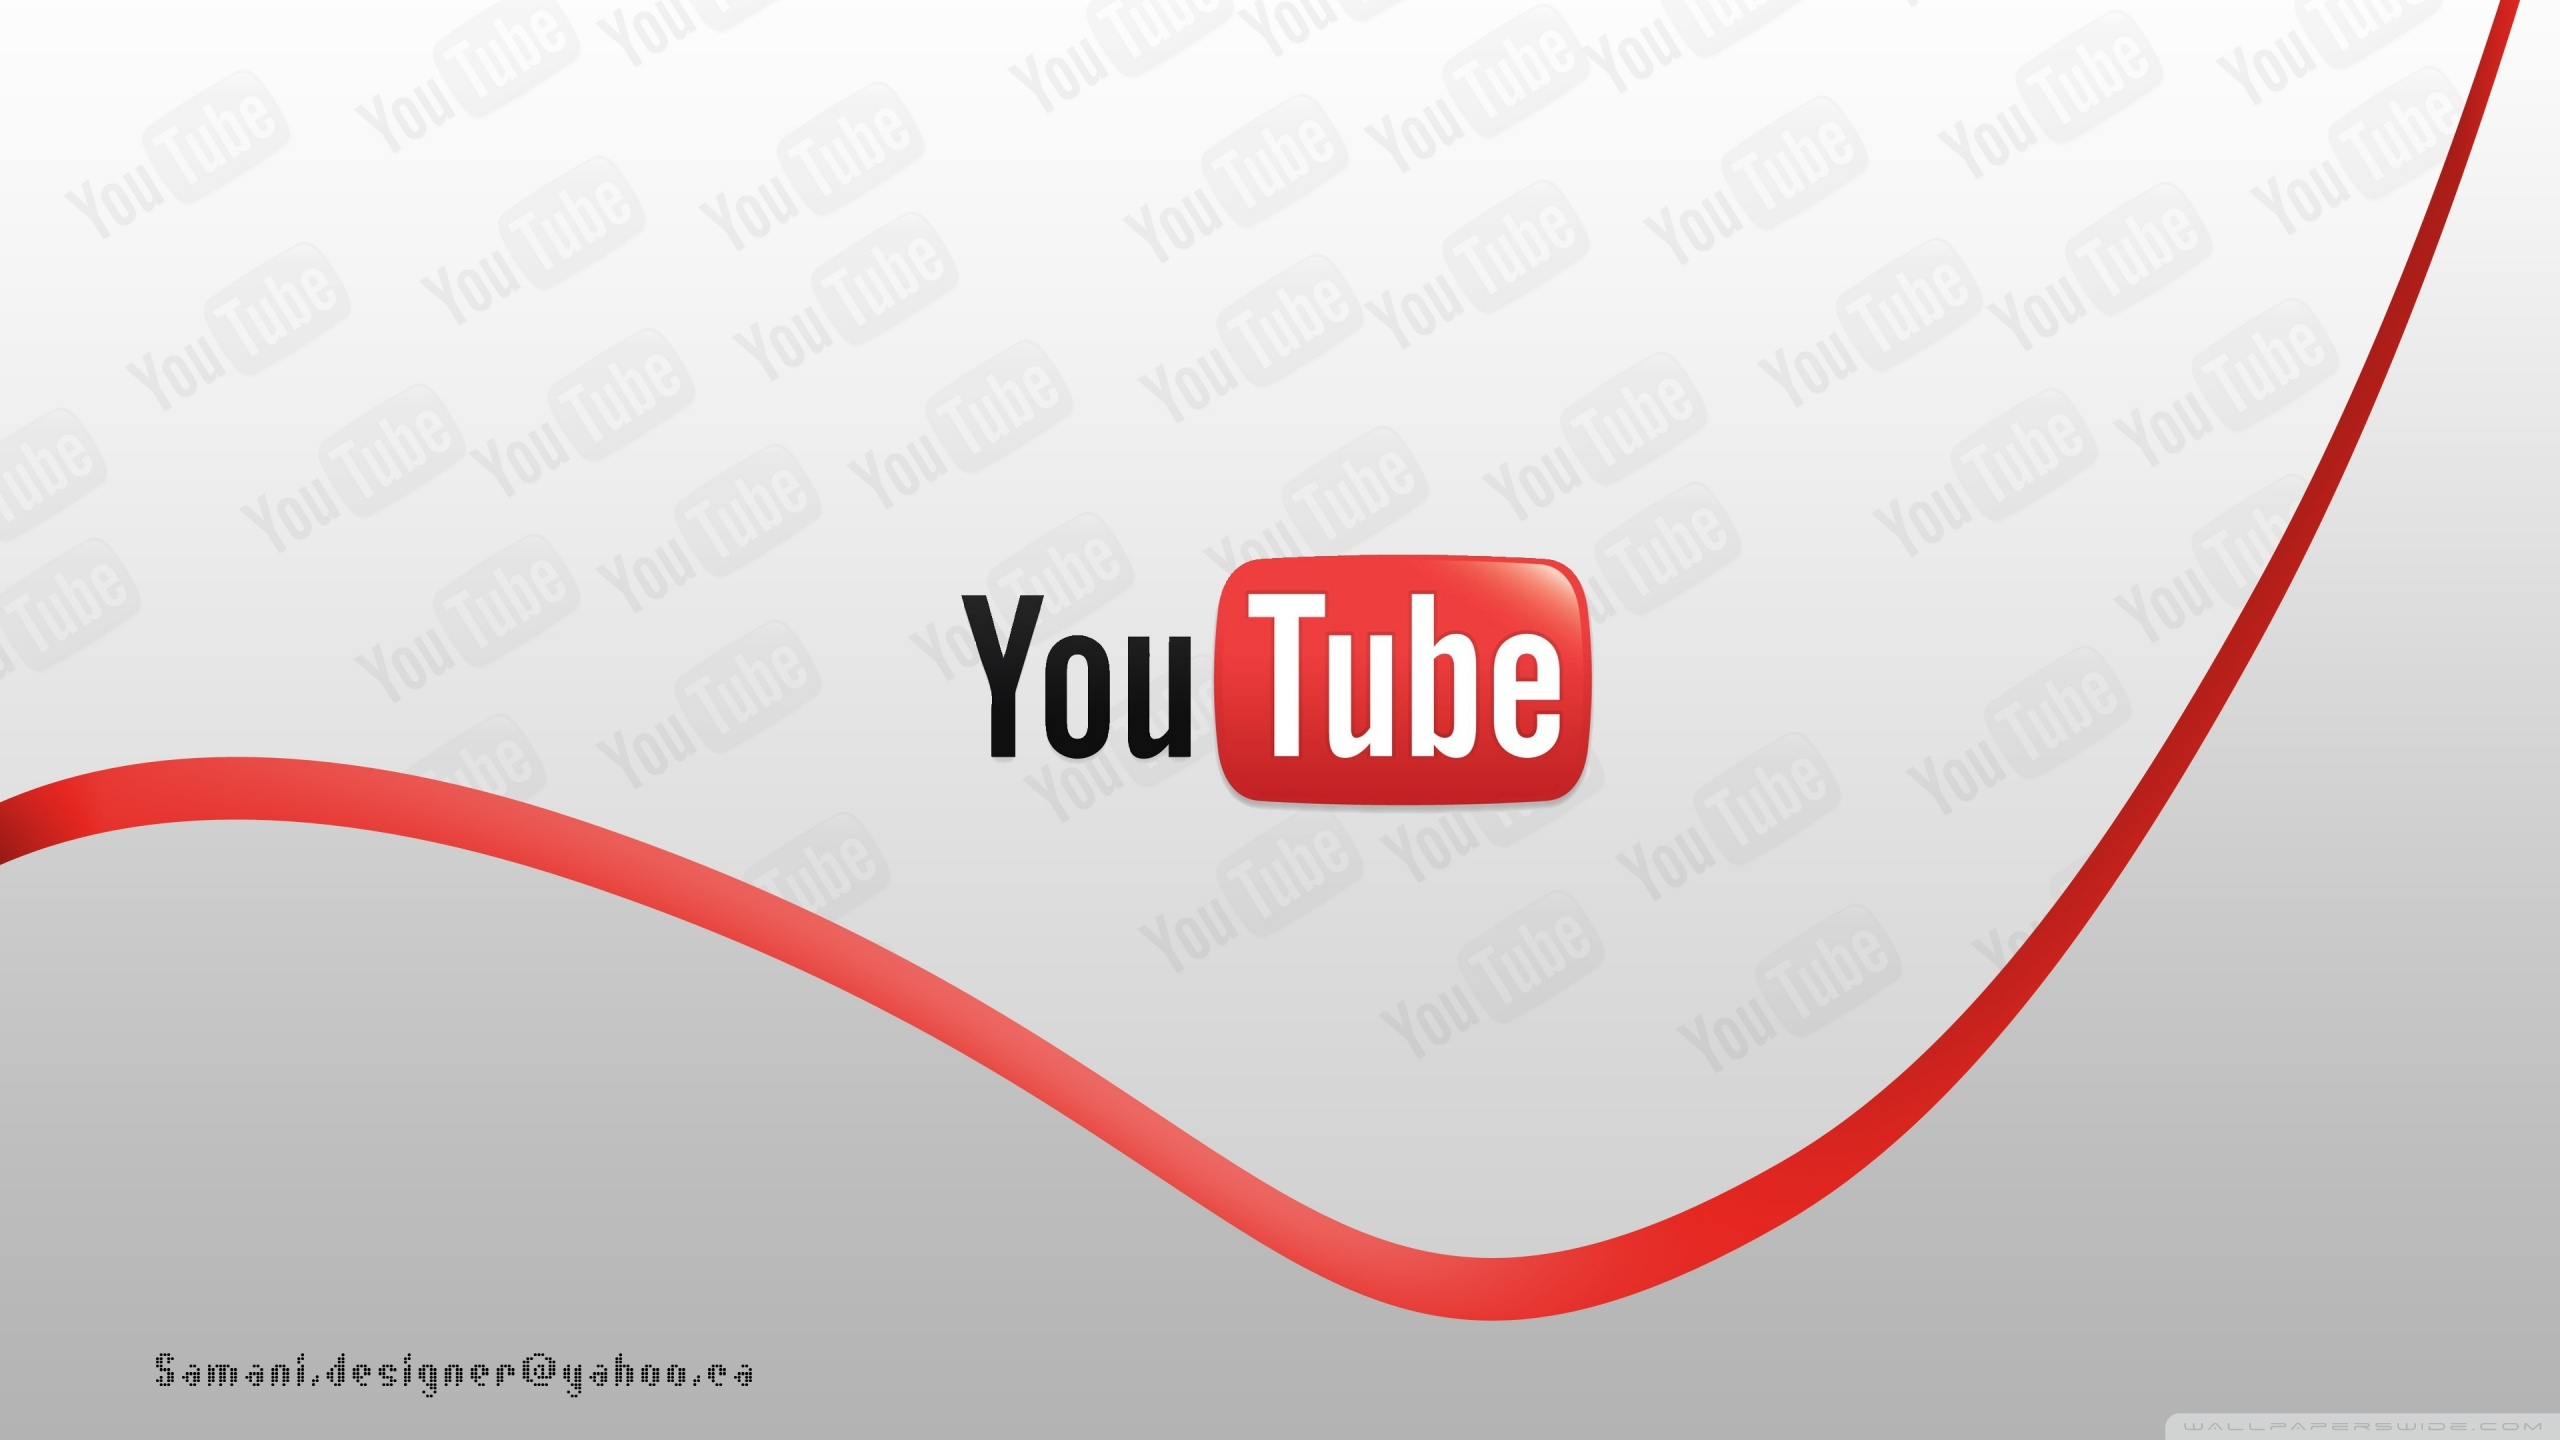 Youtube Wallpaper Wall4ever Picture How To Make A 2560 X 1440 Youtube 2560x1440